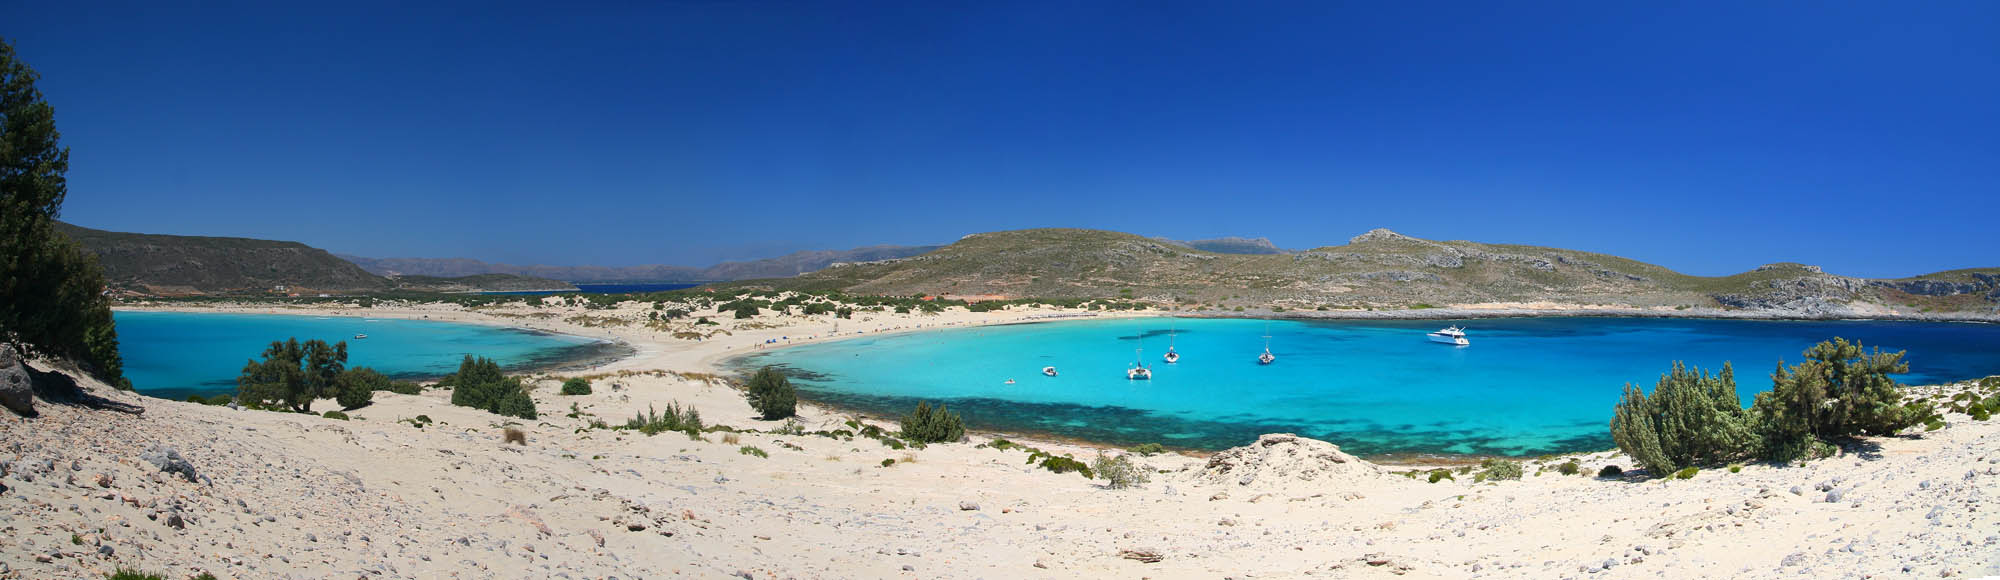 Elafonisos – a tiny island between the Peloponnese and Kythera.  An area with many beautiful beaches.